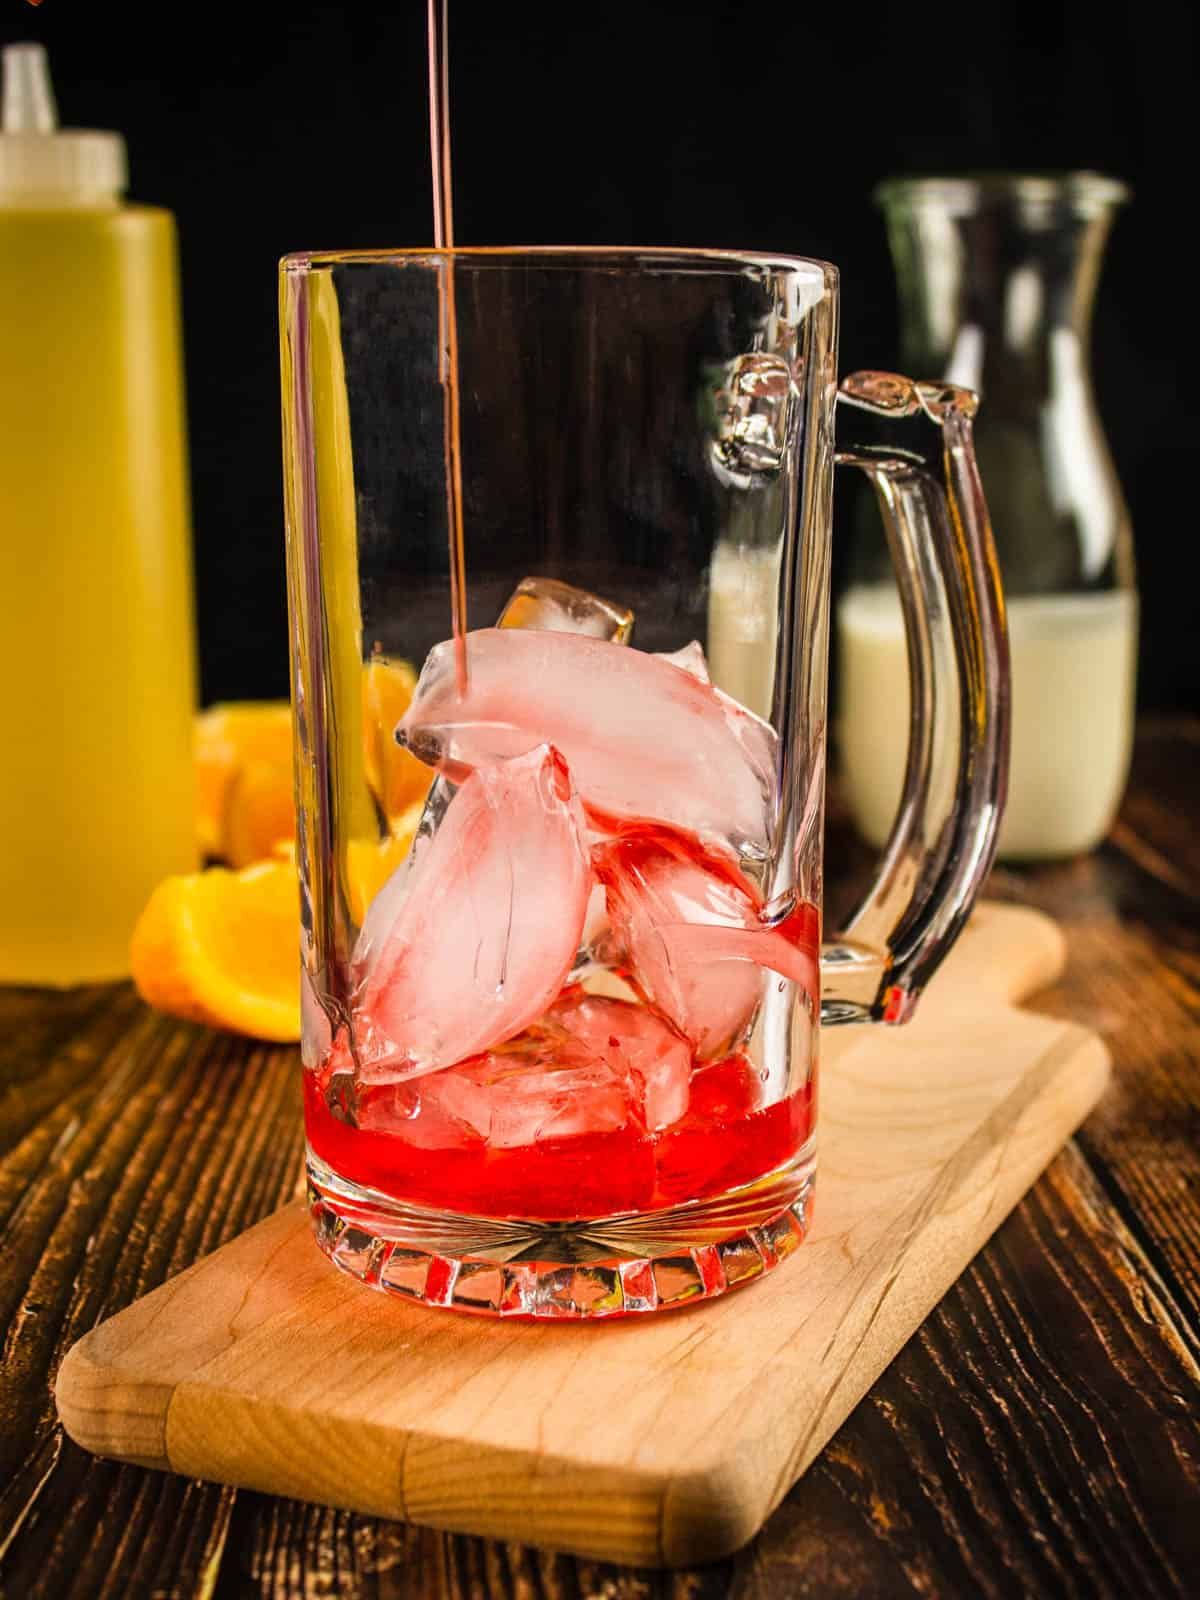 red simple syrup pouring into a glass mug with ice